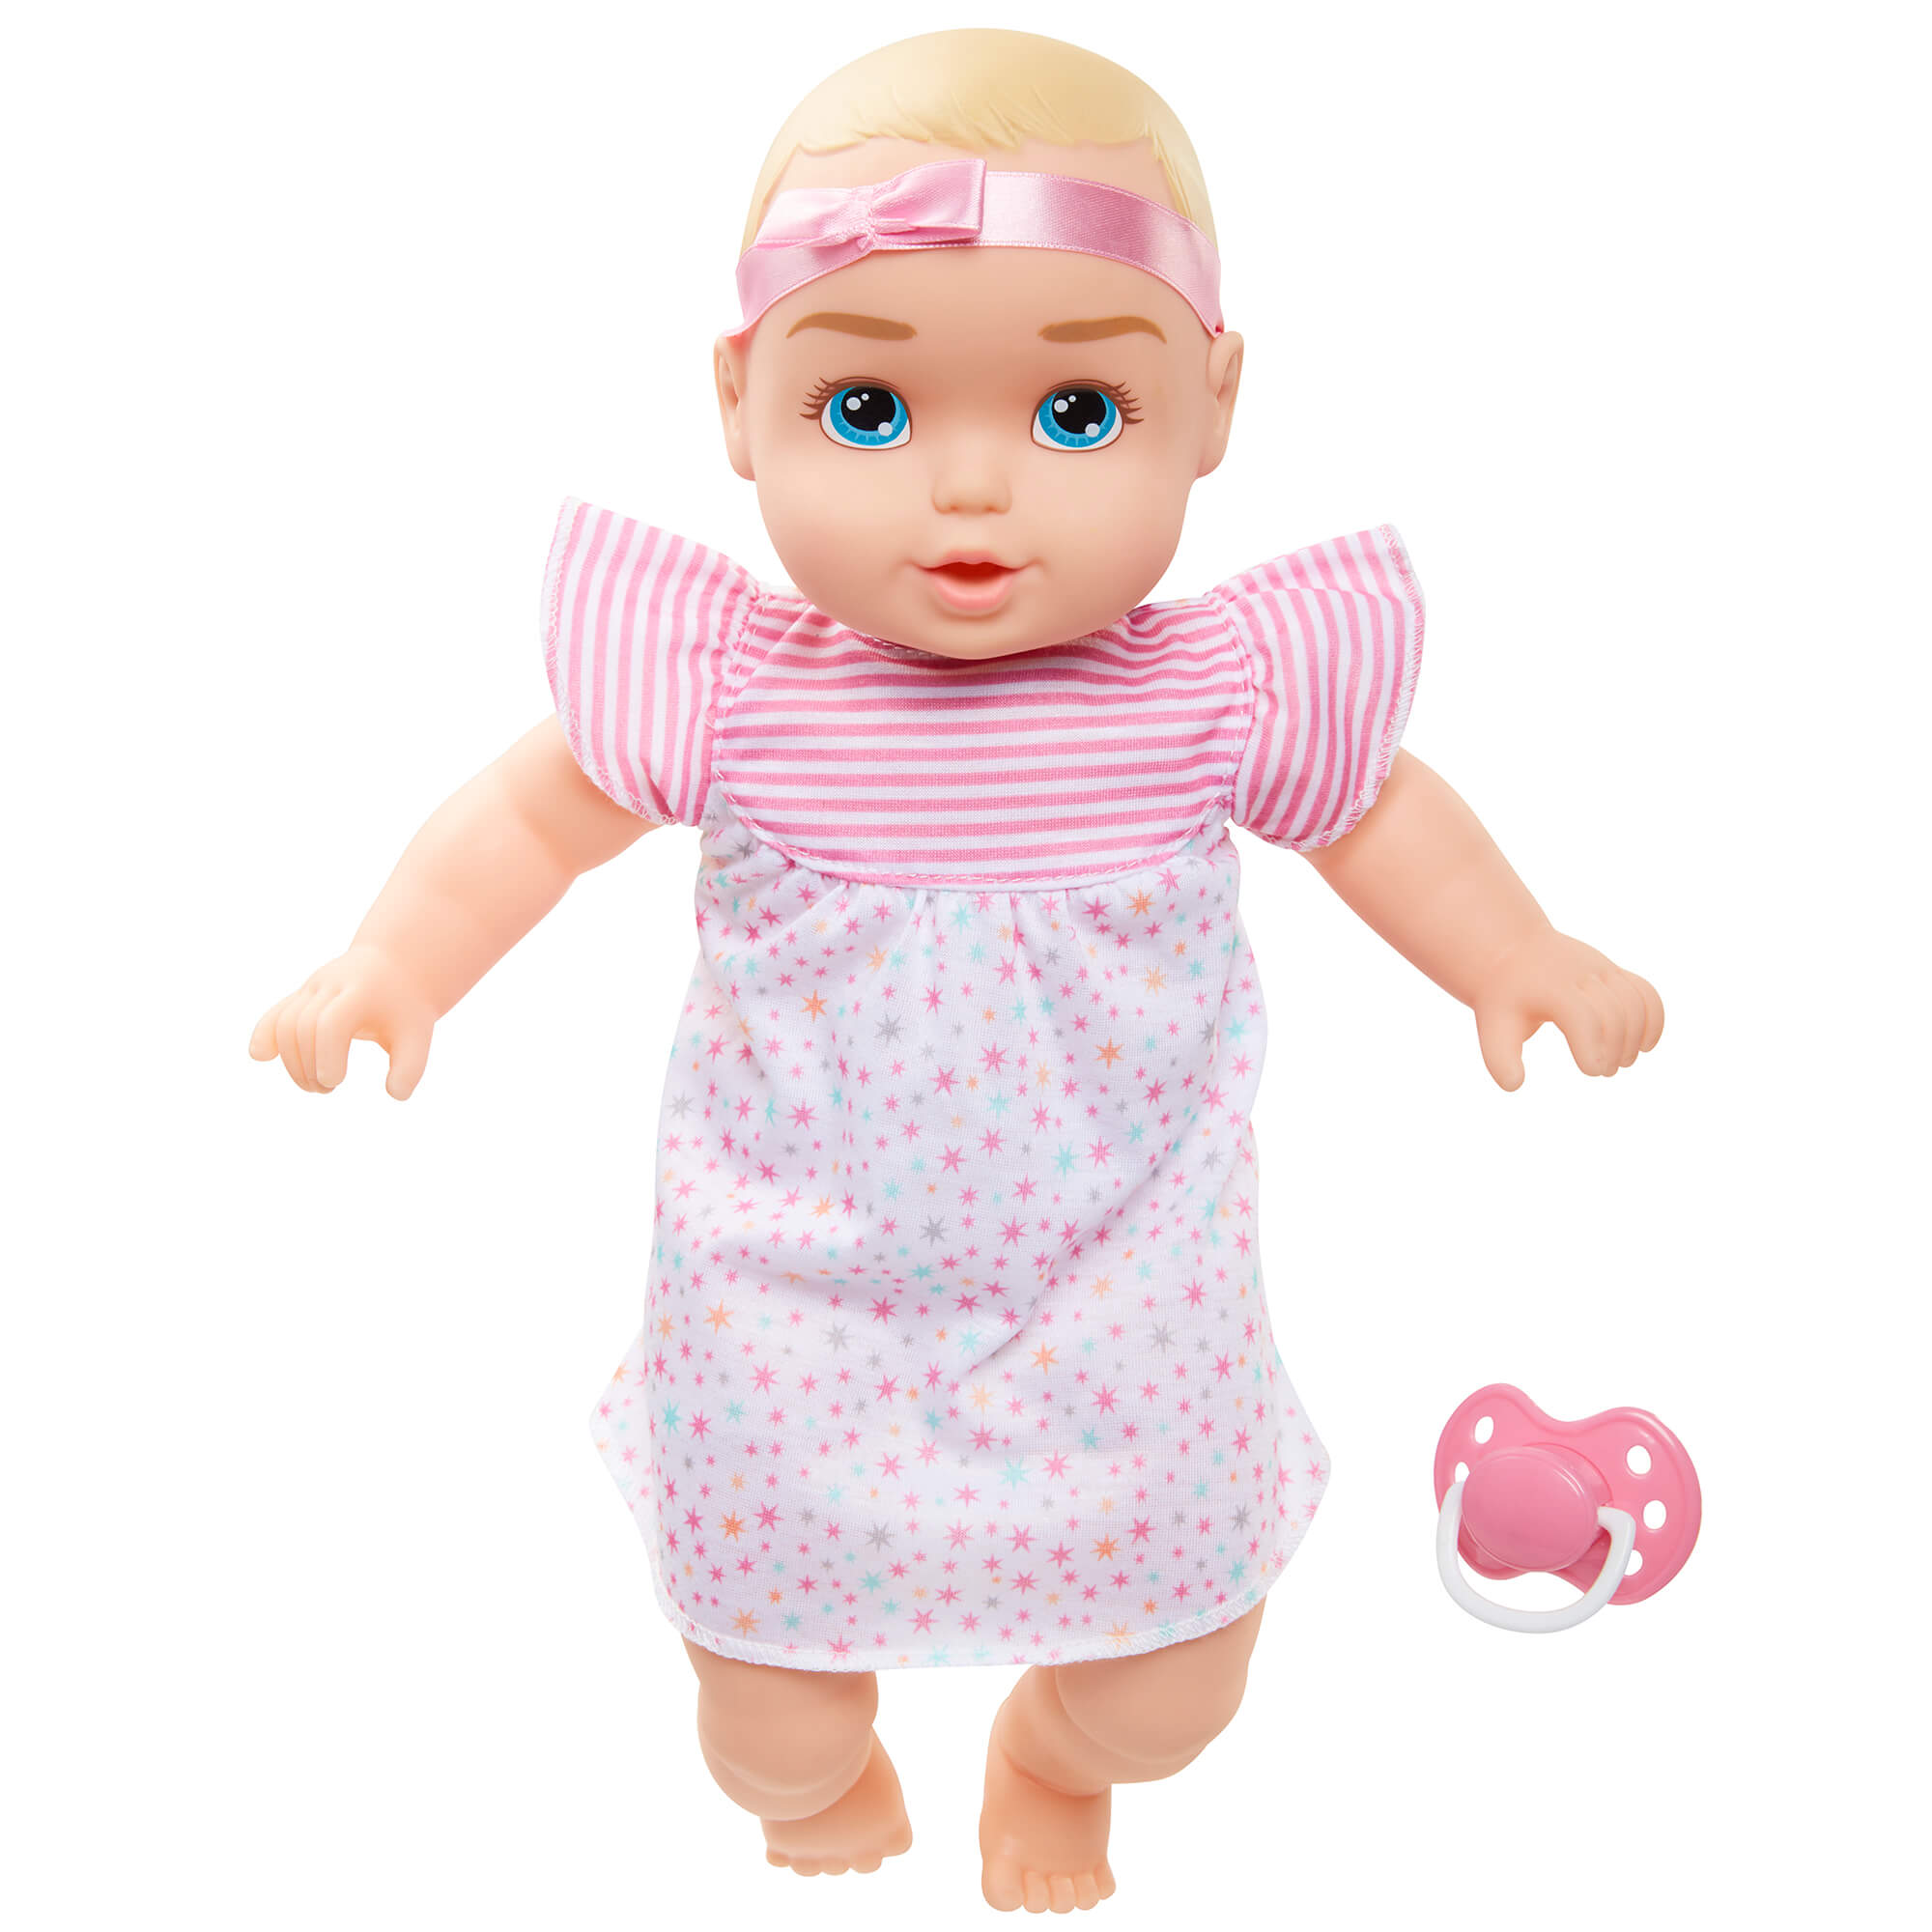 Perfectly Cute Baby 14 inch My Sweet Baby Girl Doll (Blonde - Blue Eyes)